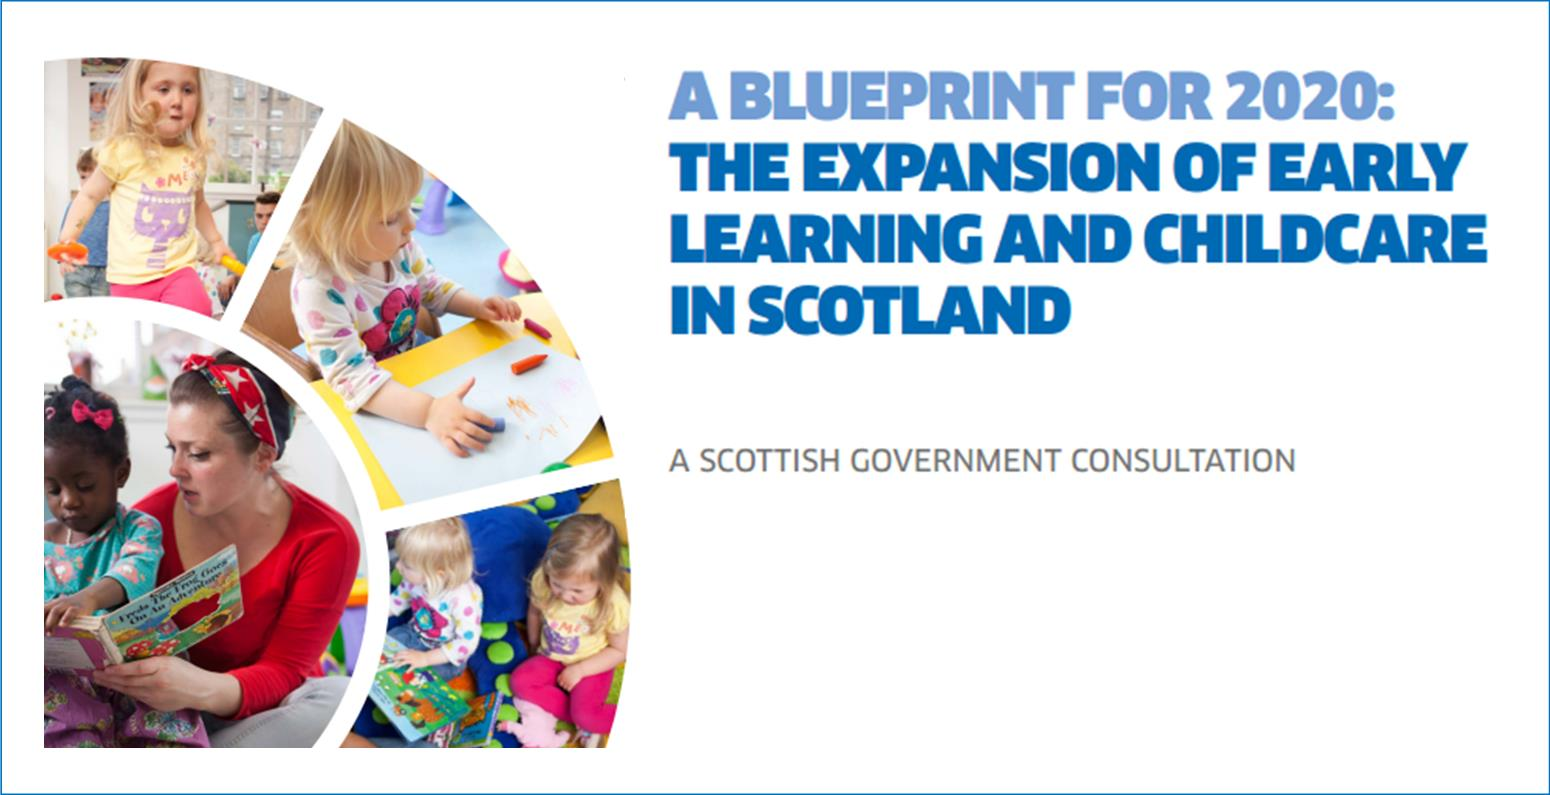 A blueprint for 2020 the expansion of early learning and childcare a blueprint for 2020 the expansion of early learning and childcare in scotland malvernweather Choice Image